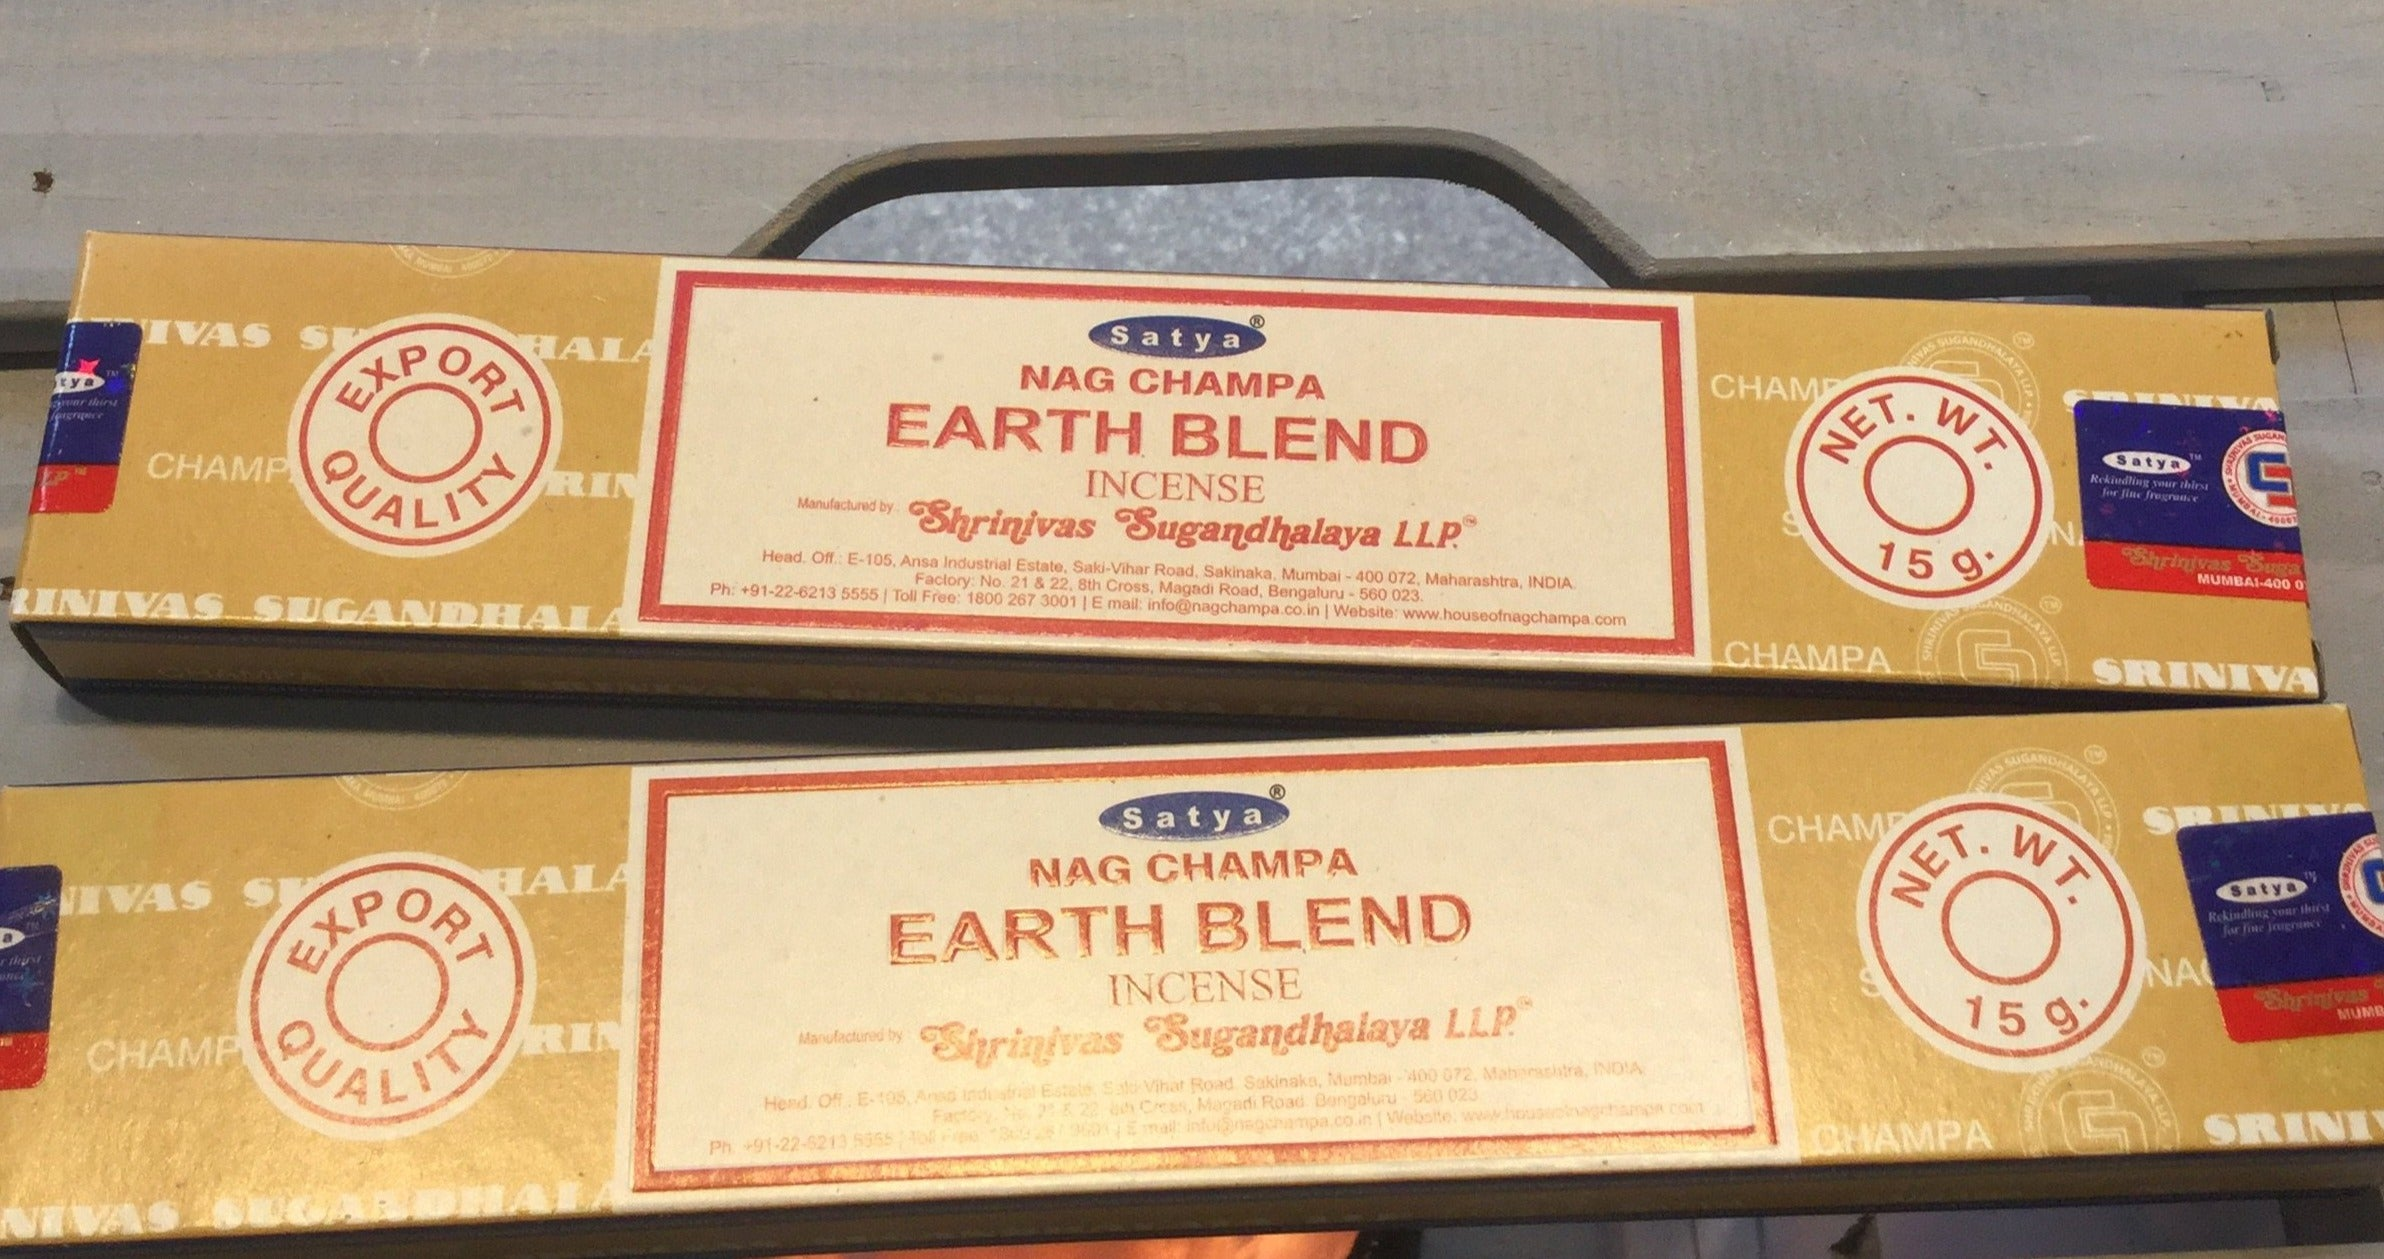 Satya Earth Blend Incense 15g Pack